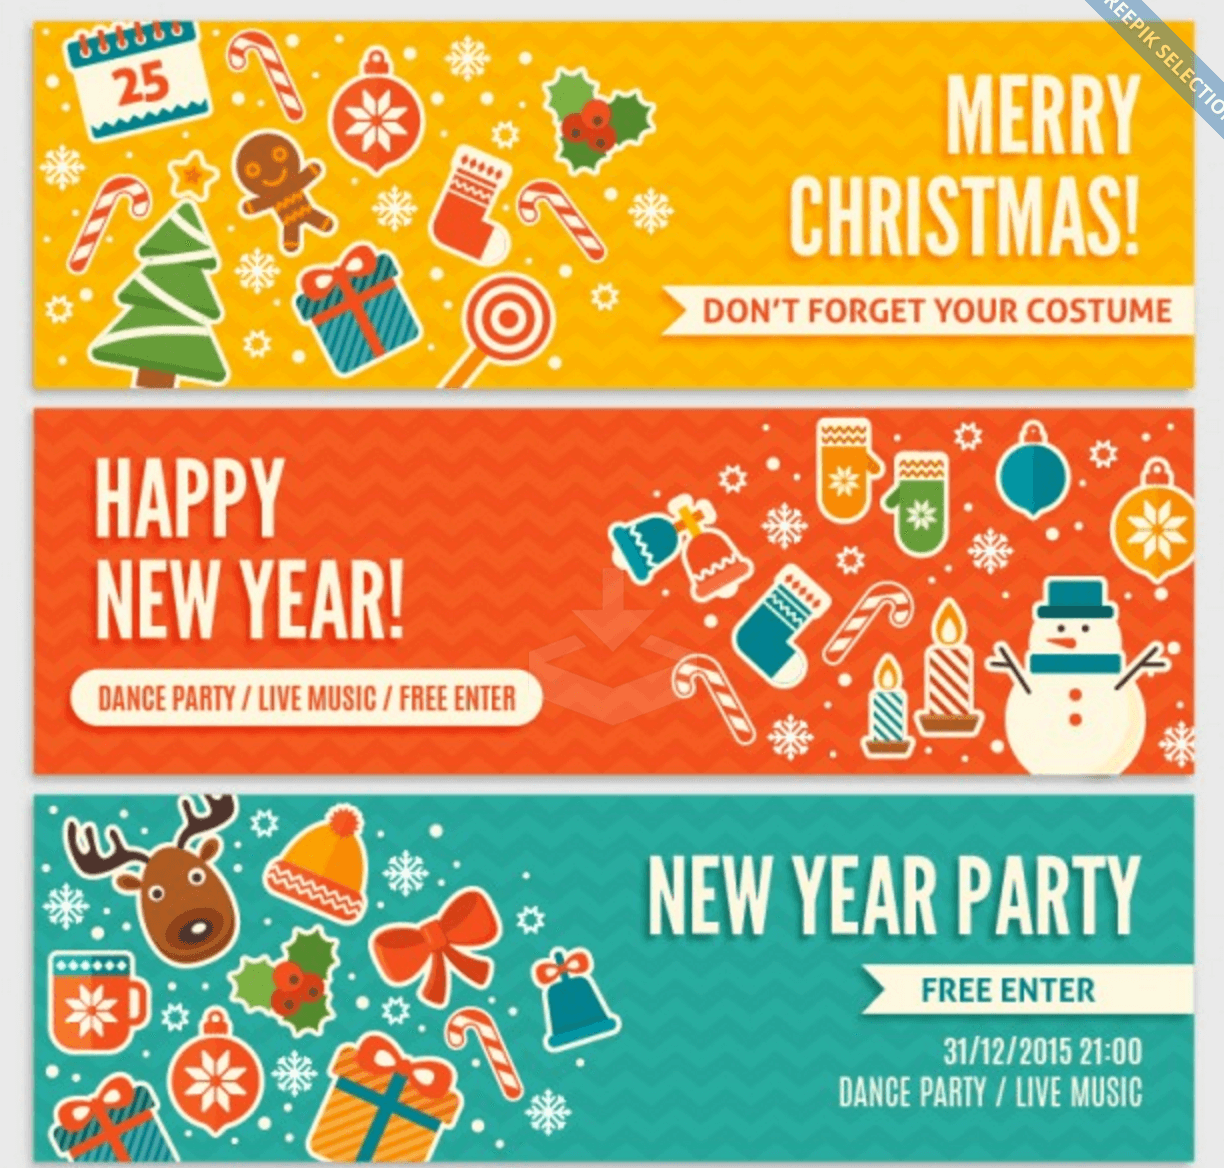 Cute Invitation for Christmas Banners